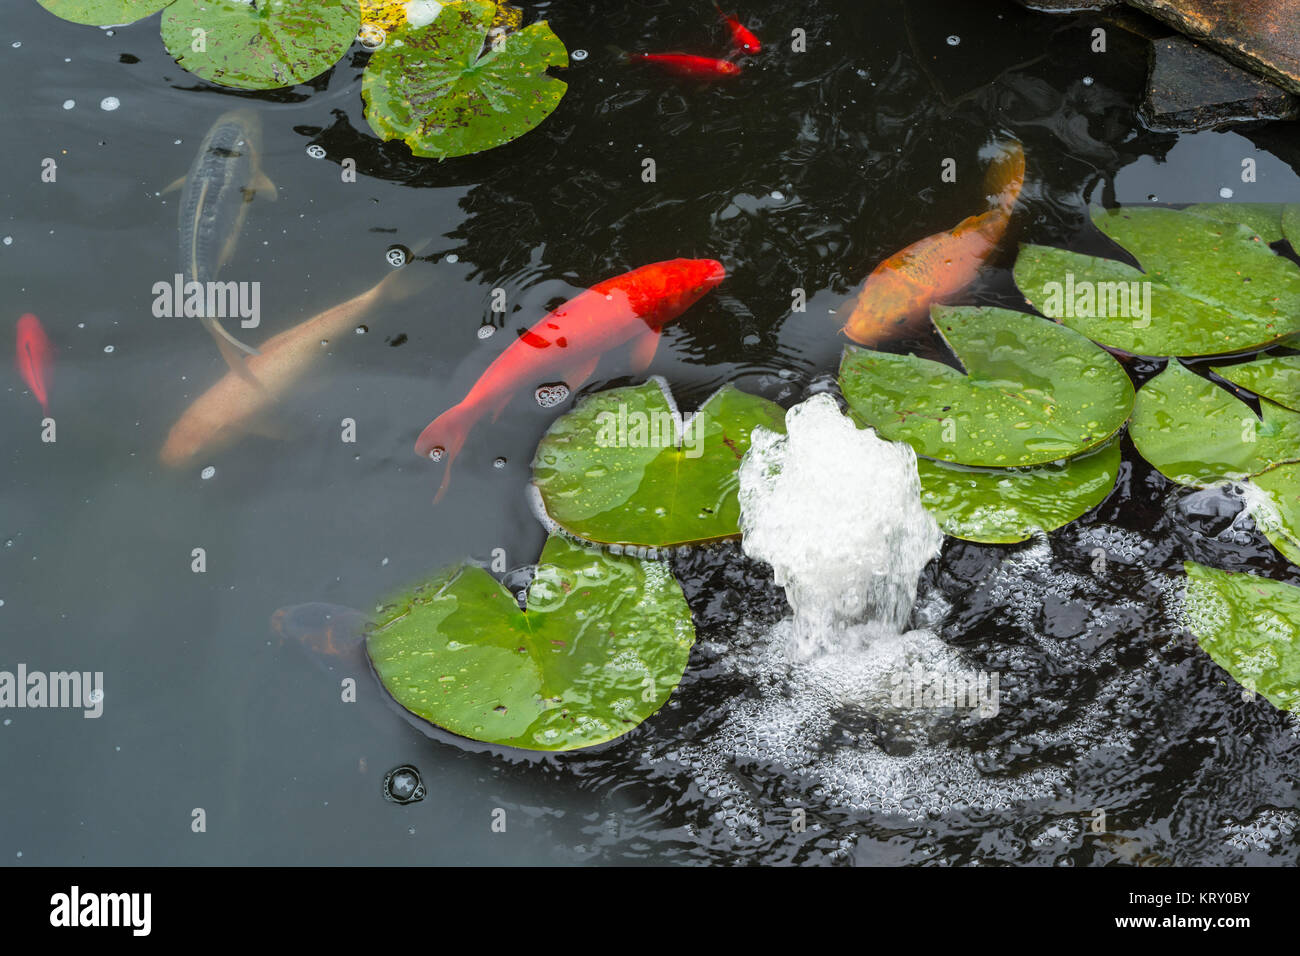 Wassergarten stock photos wassergarten stock images alamy for Koi swimming